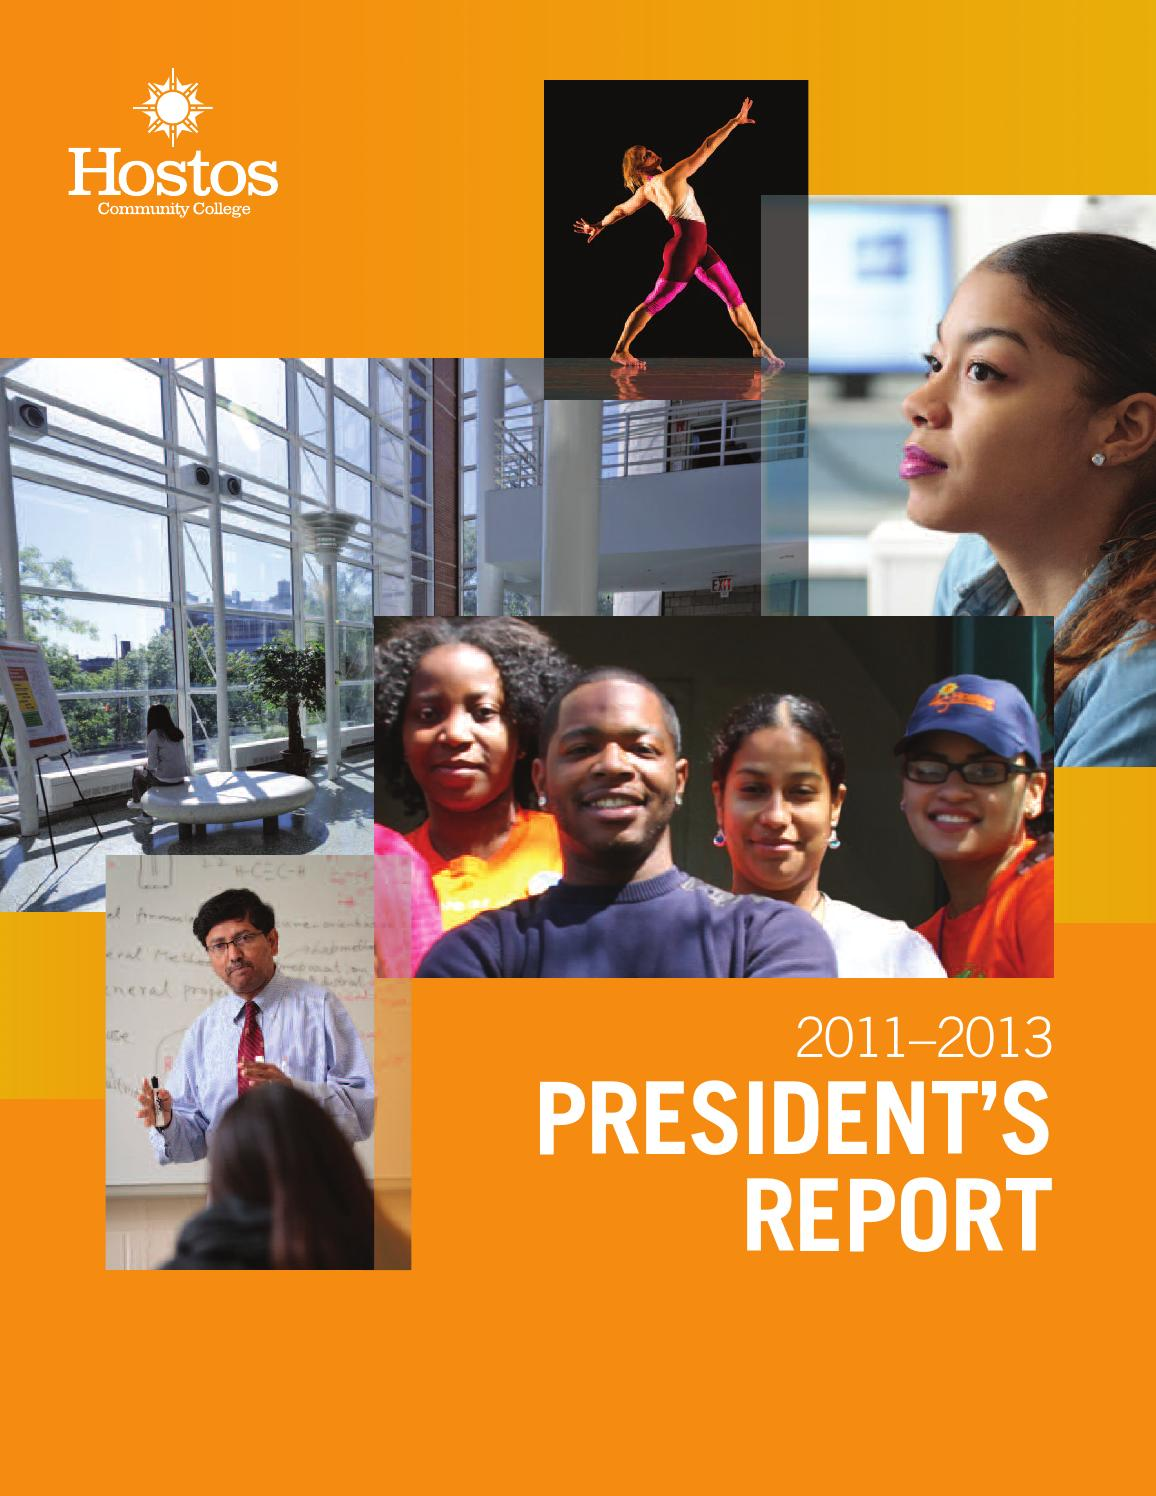 2011-2013 President's Report by Hostos Community College - issuu